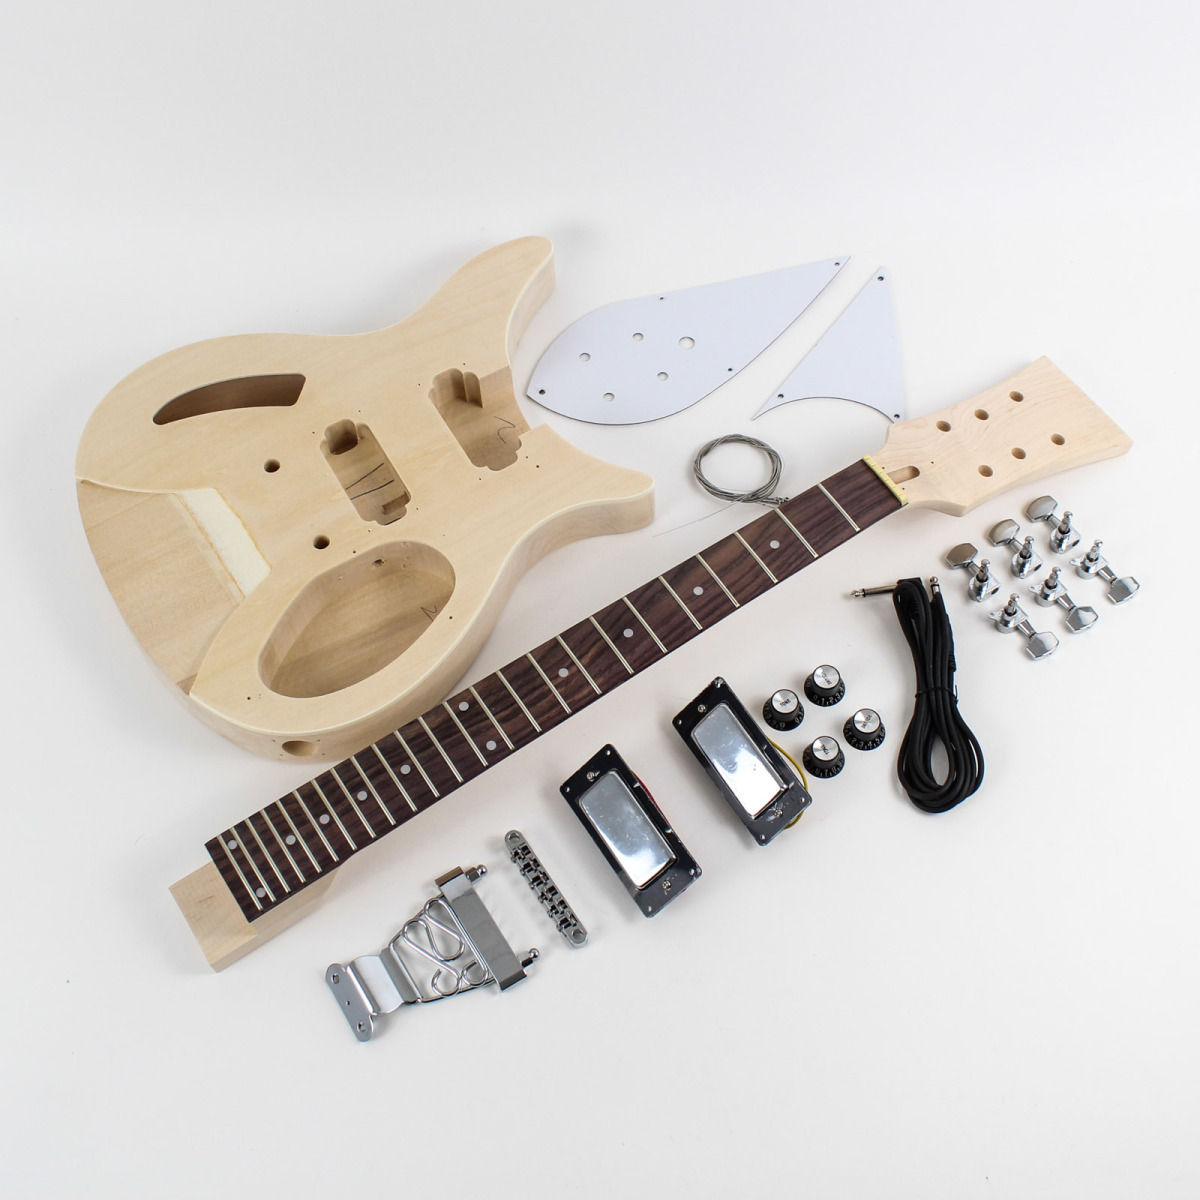 Design Your Own Kit Home Rickenbacker Style Semi Hollow Diy Guitars